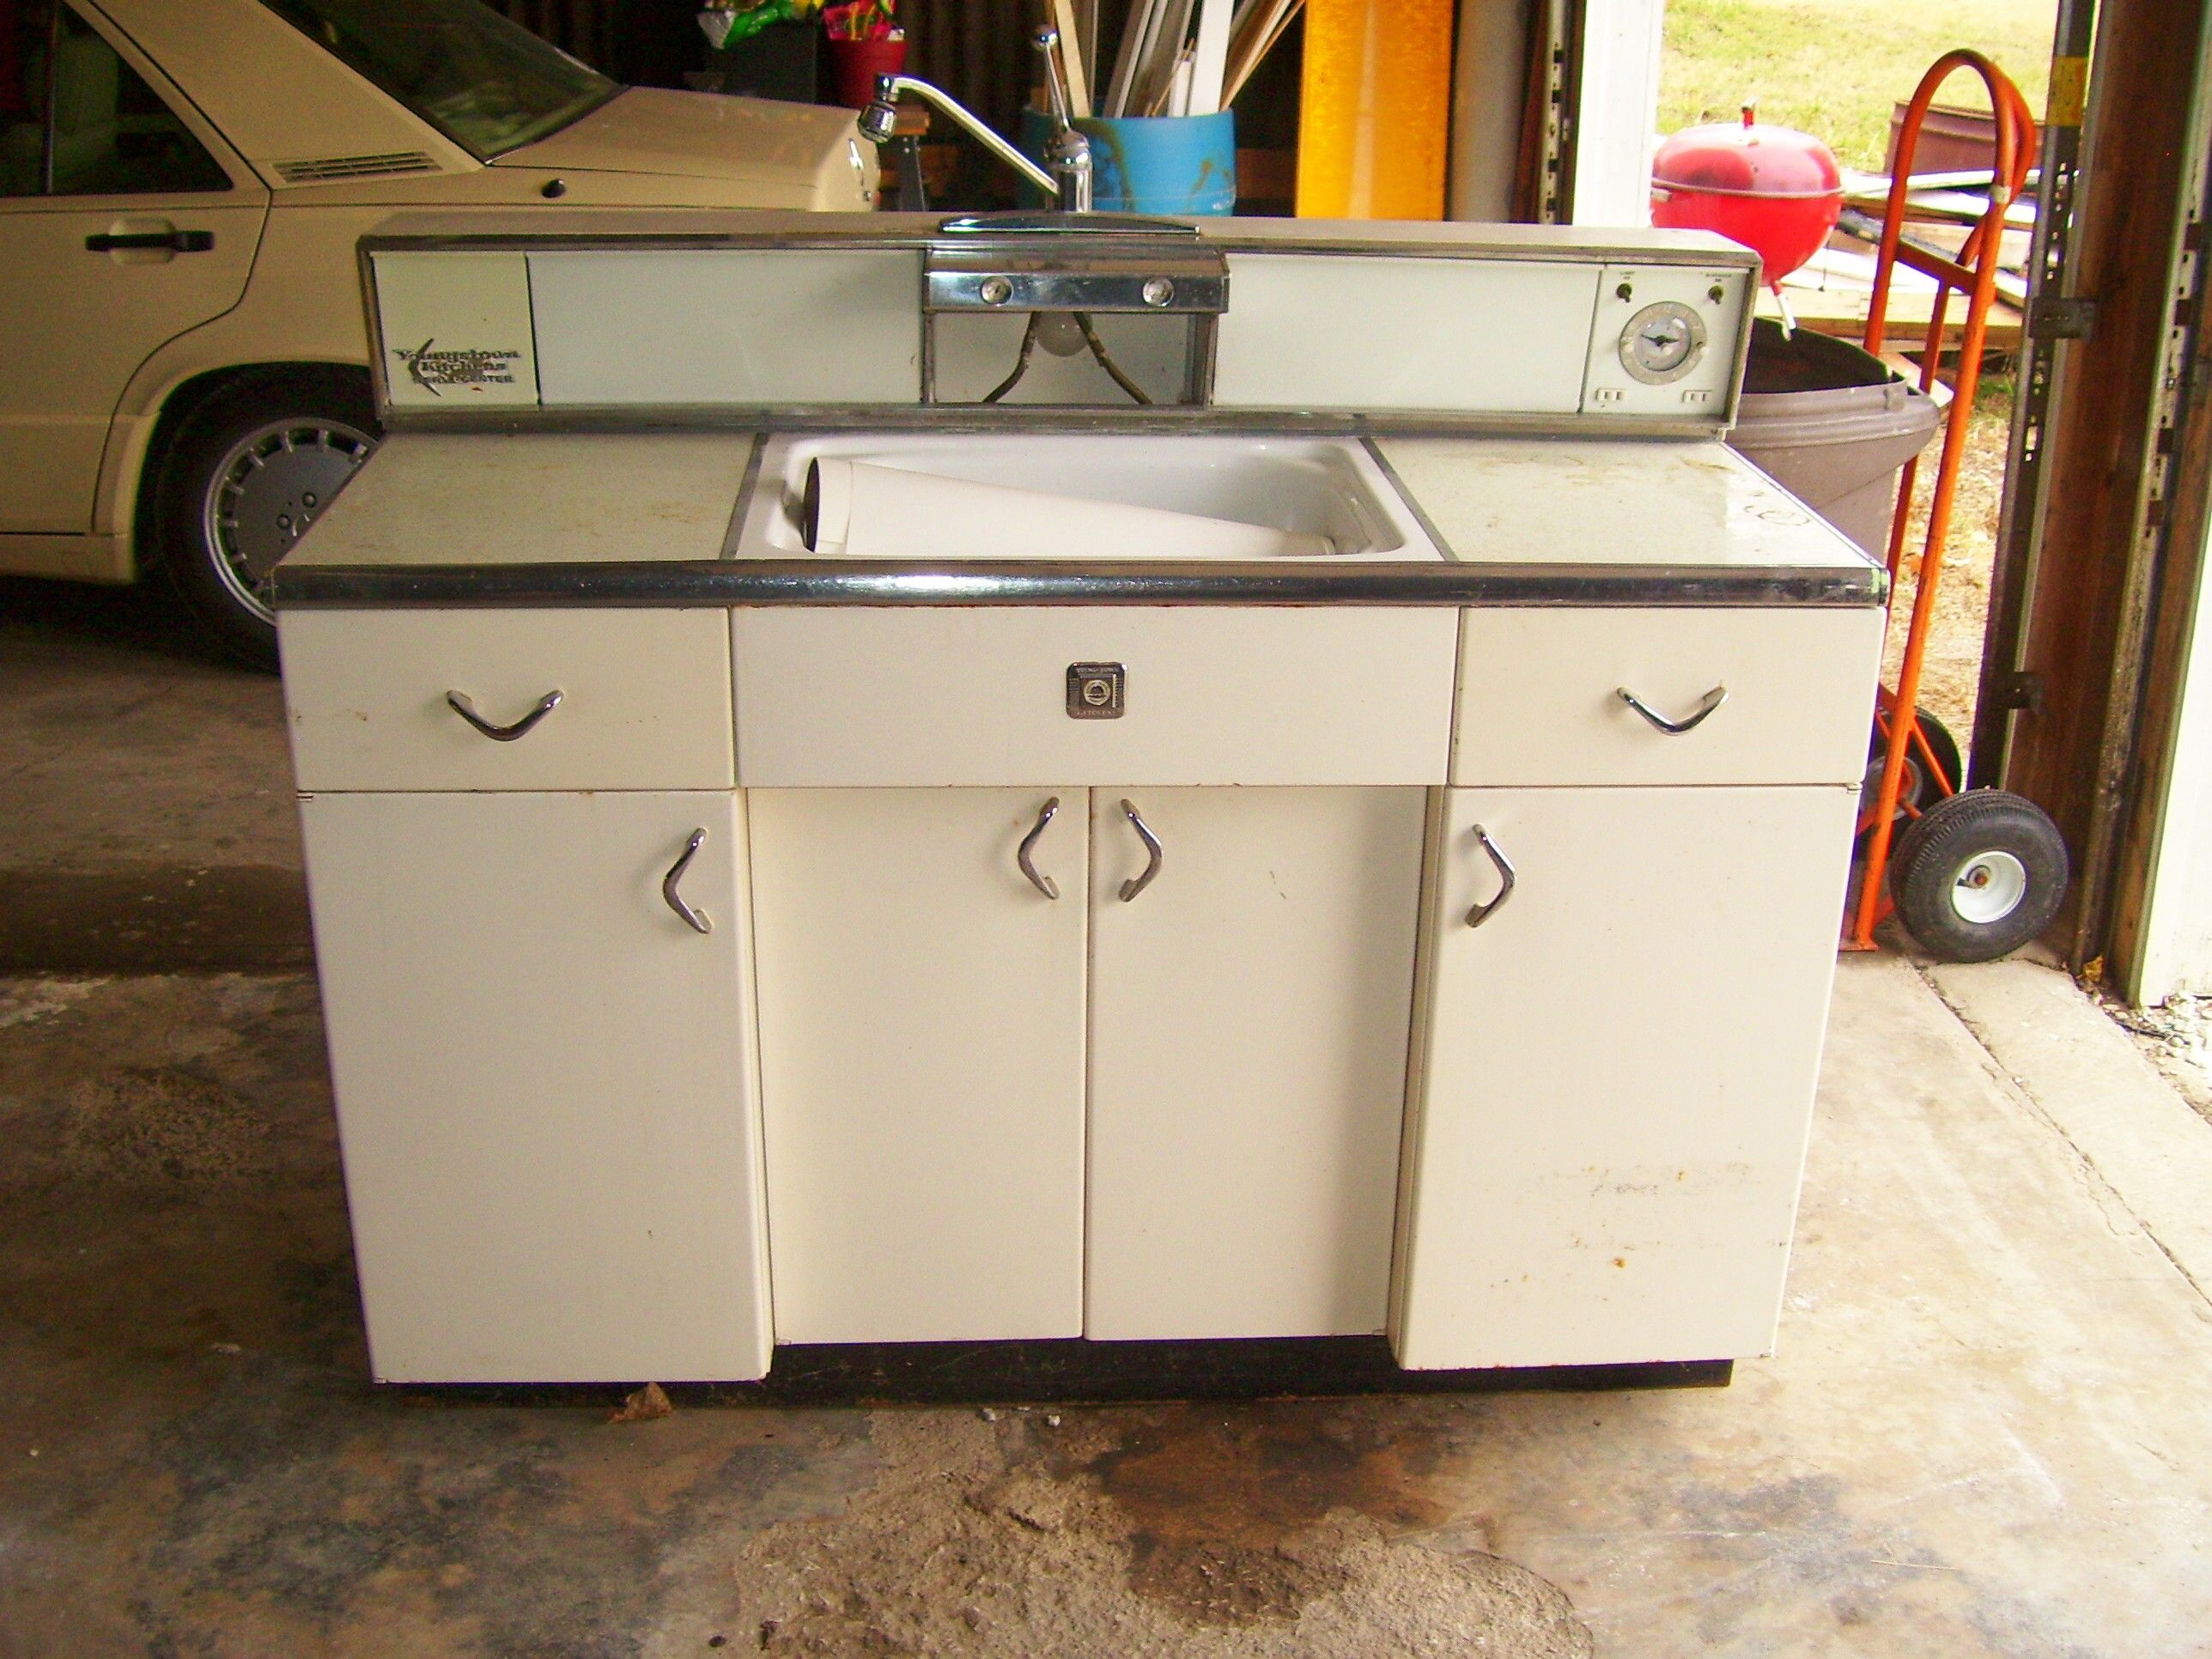 This Is What We Are Looking For Old Metal Cabinets And Any Retro Bathroom Kitchen Stuff We Are Gonna Metal Kitchen Cabinets Kitchen Cabinets Metal Kitchen